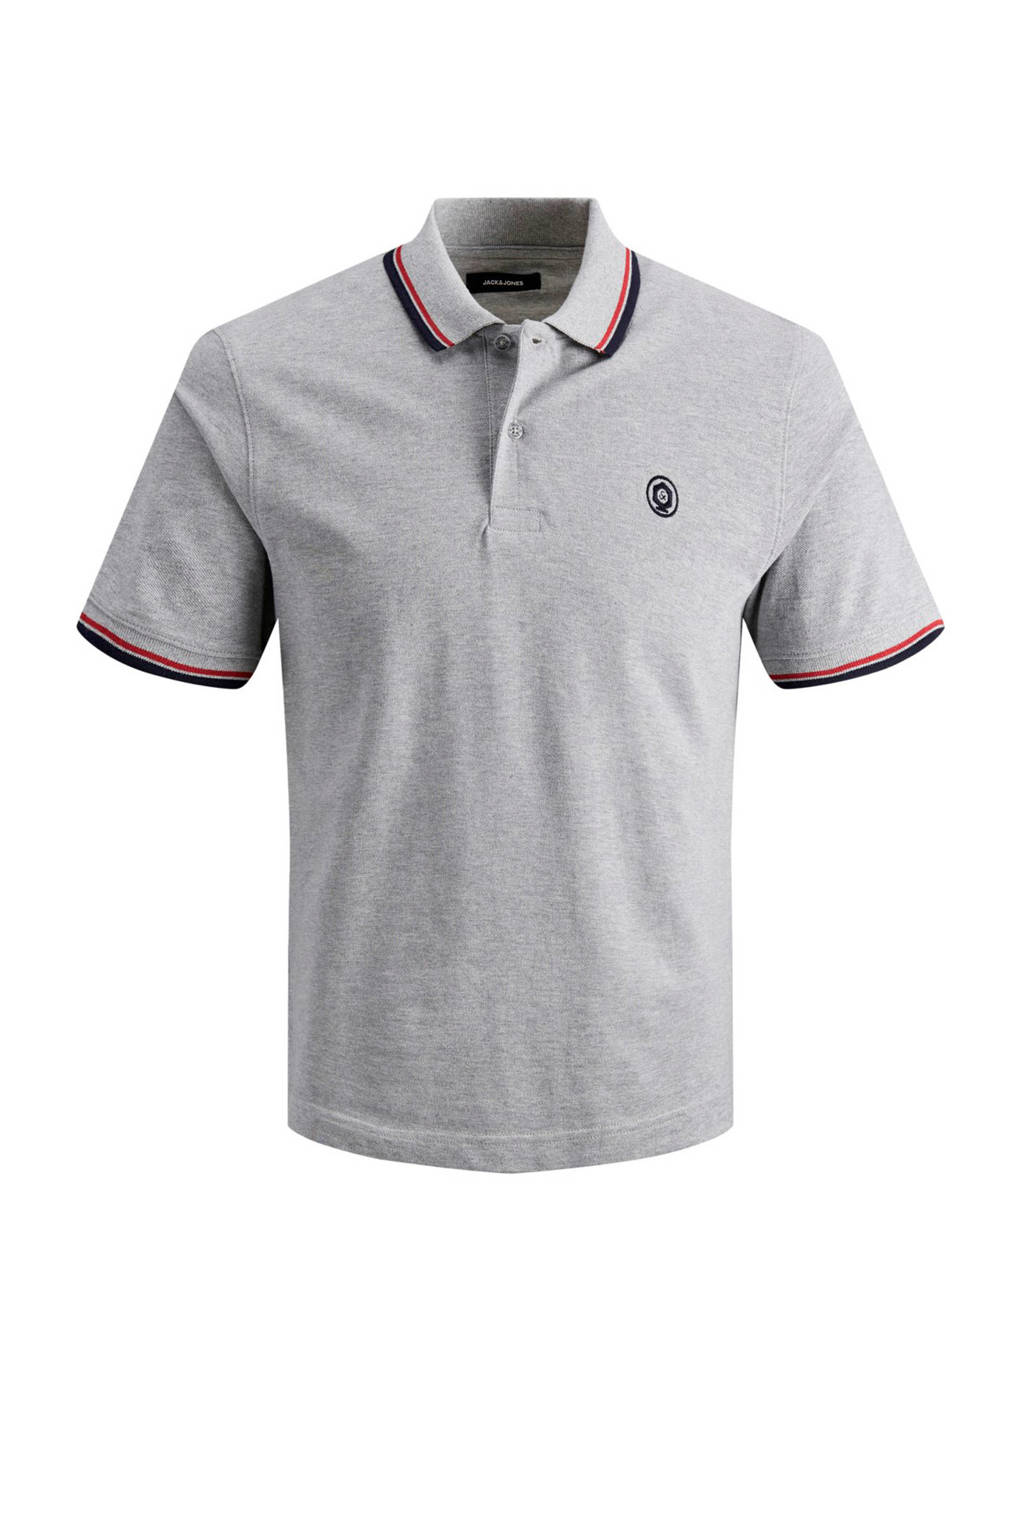 JACK & JONES ESSENTIALS slim fit polo met logo grijs, Grijs